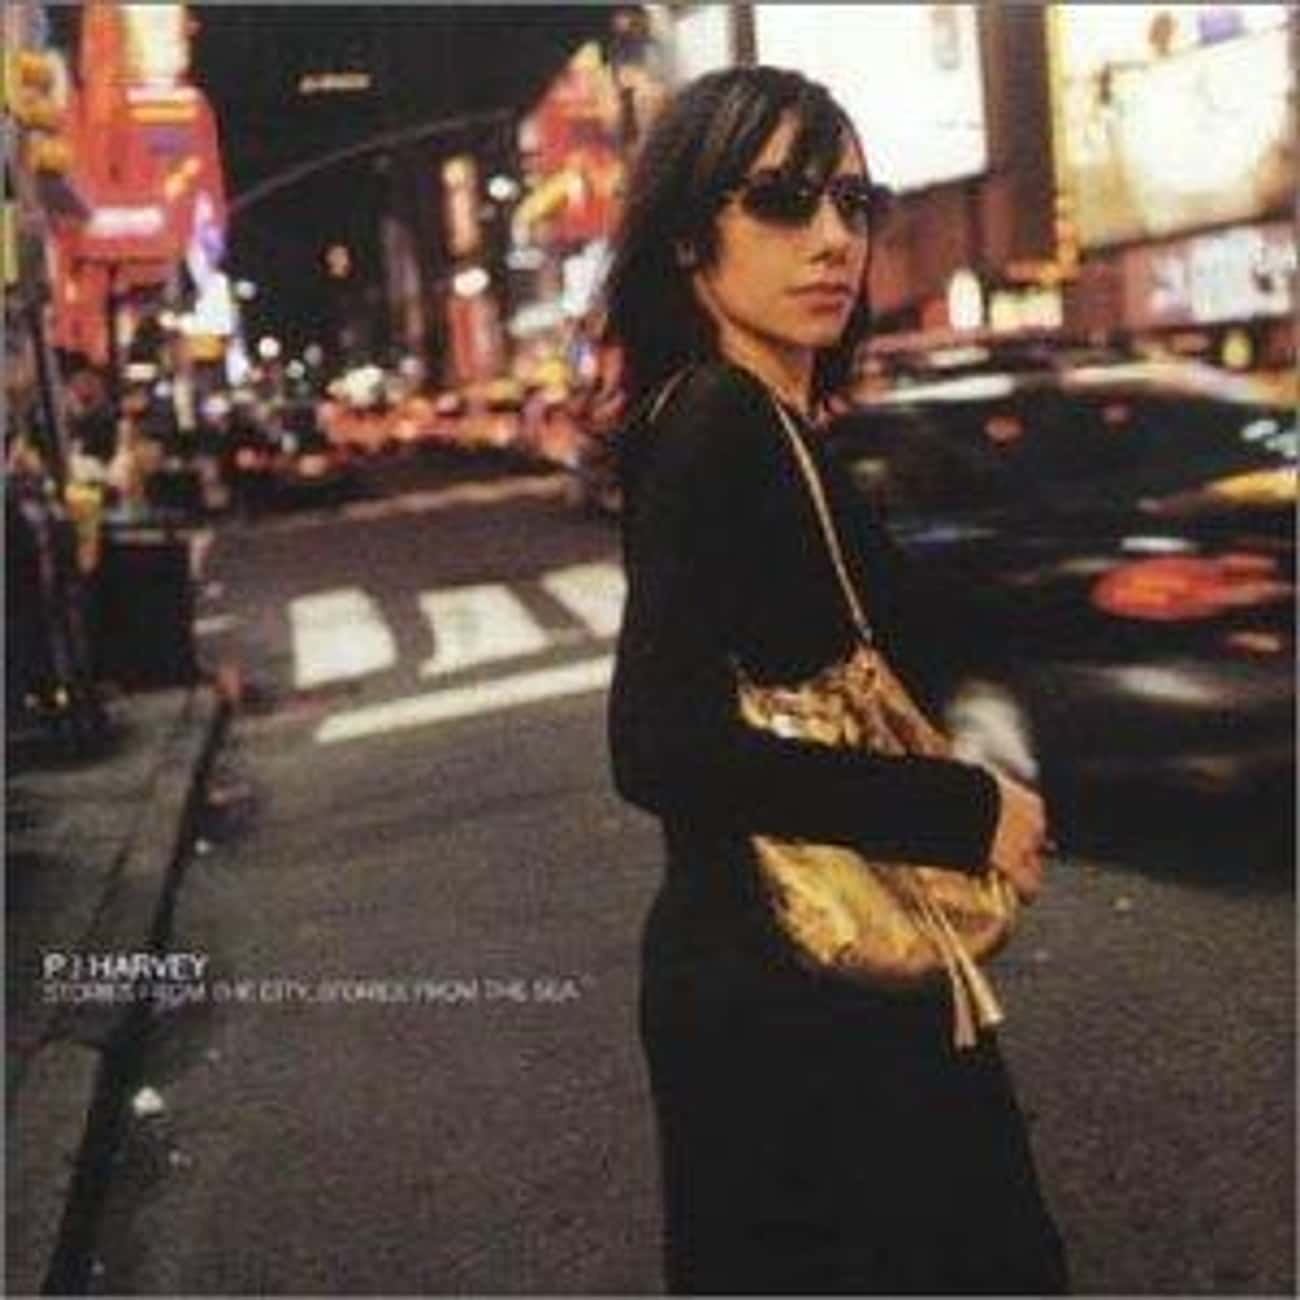 Stories From the City, Stories is listed (or ranked) 3 on the list The Best PJ Harvey Albums of All Time